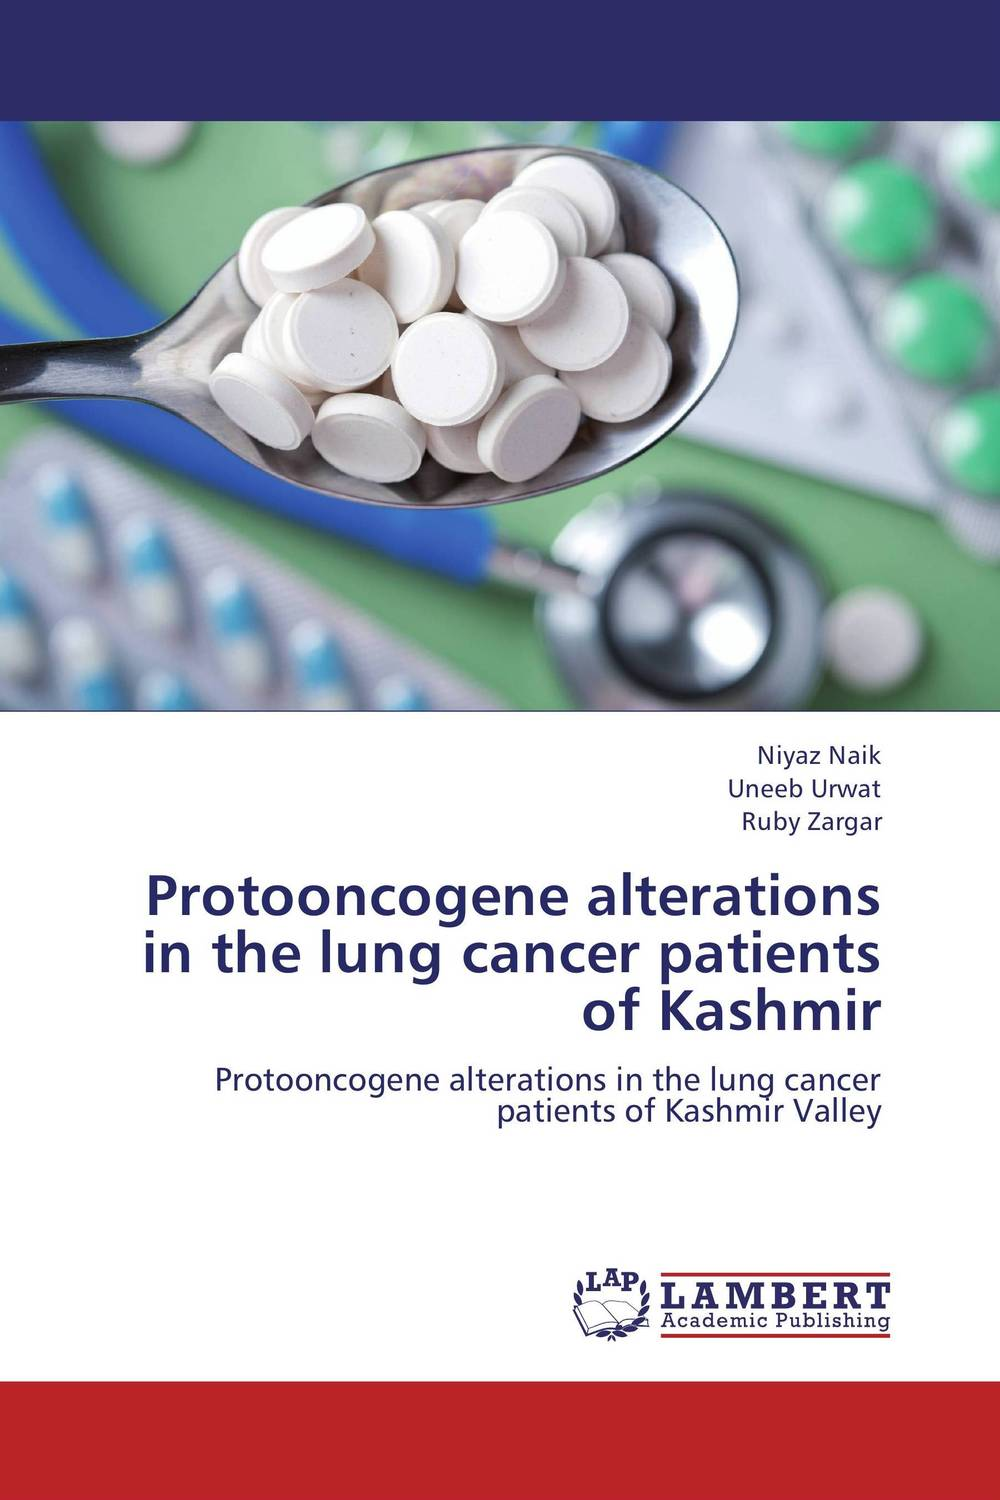 Protooncogene alterations in the lung cancer patients of Kashmir analysis of tp53 and promoter hypermethylation of mgmt in lung cancer